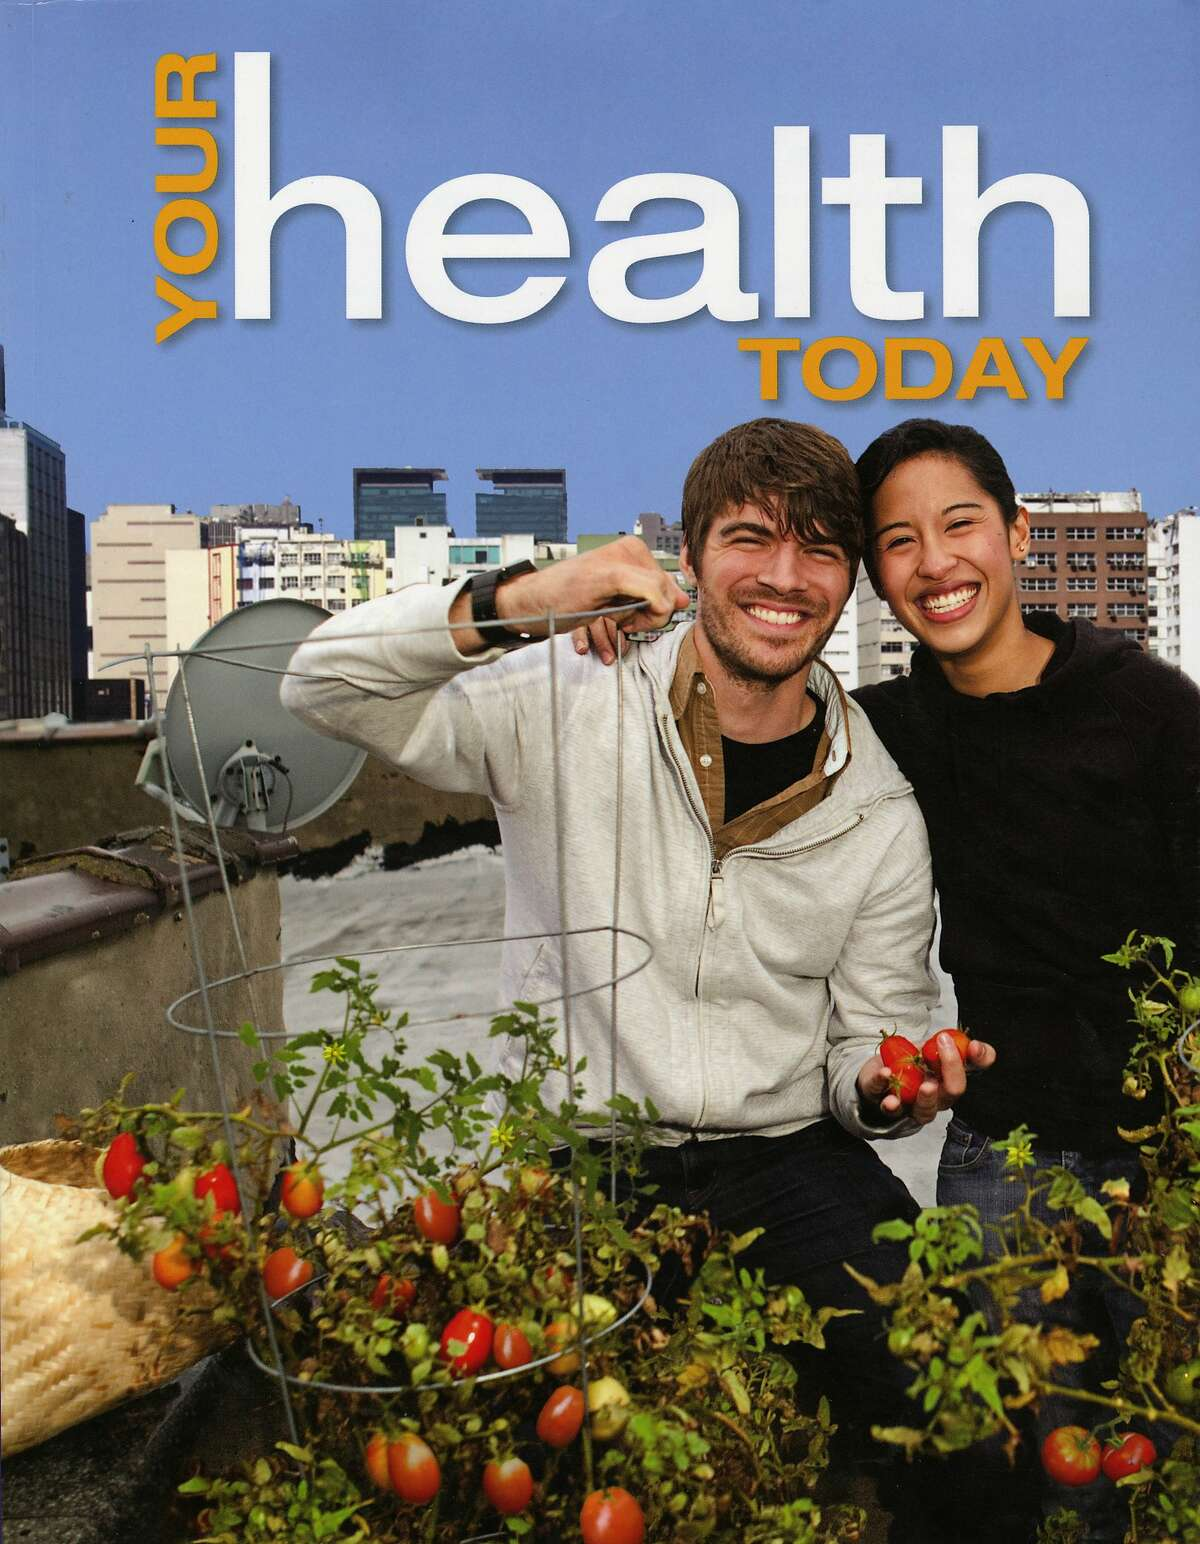 """The cover of the textbook """"Your Health Today"""" published by McGraw Hill. The book is causing controversy among parents in the Fremont Unified School District, where it is slated to be taught to their ninth-grade students. The parents say the book's diagrams and explicit descriptions are inappropriate for high school students."""